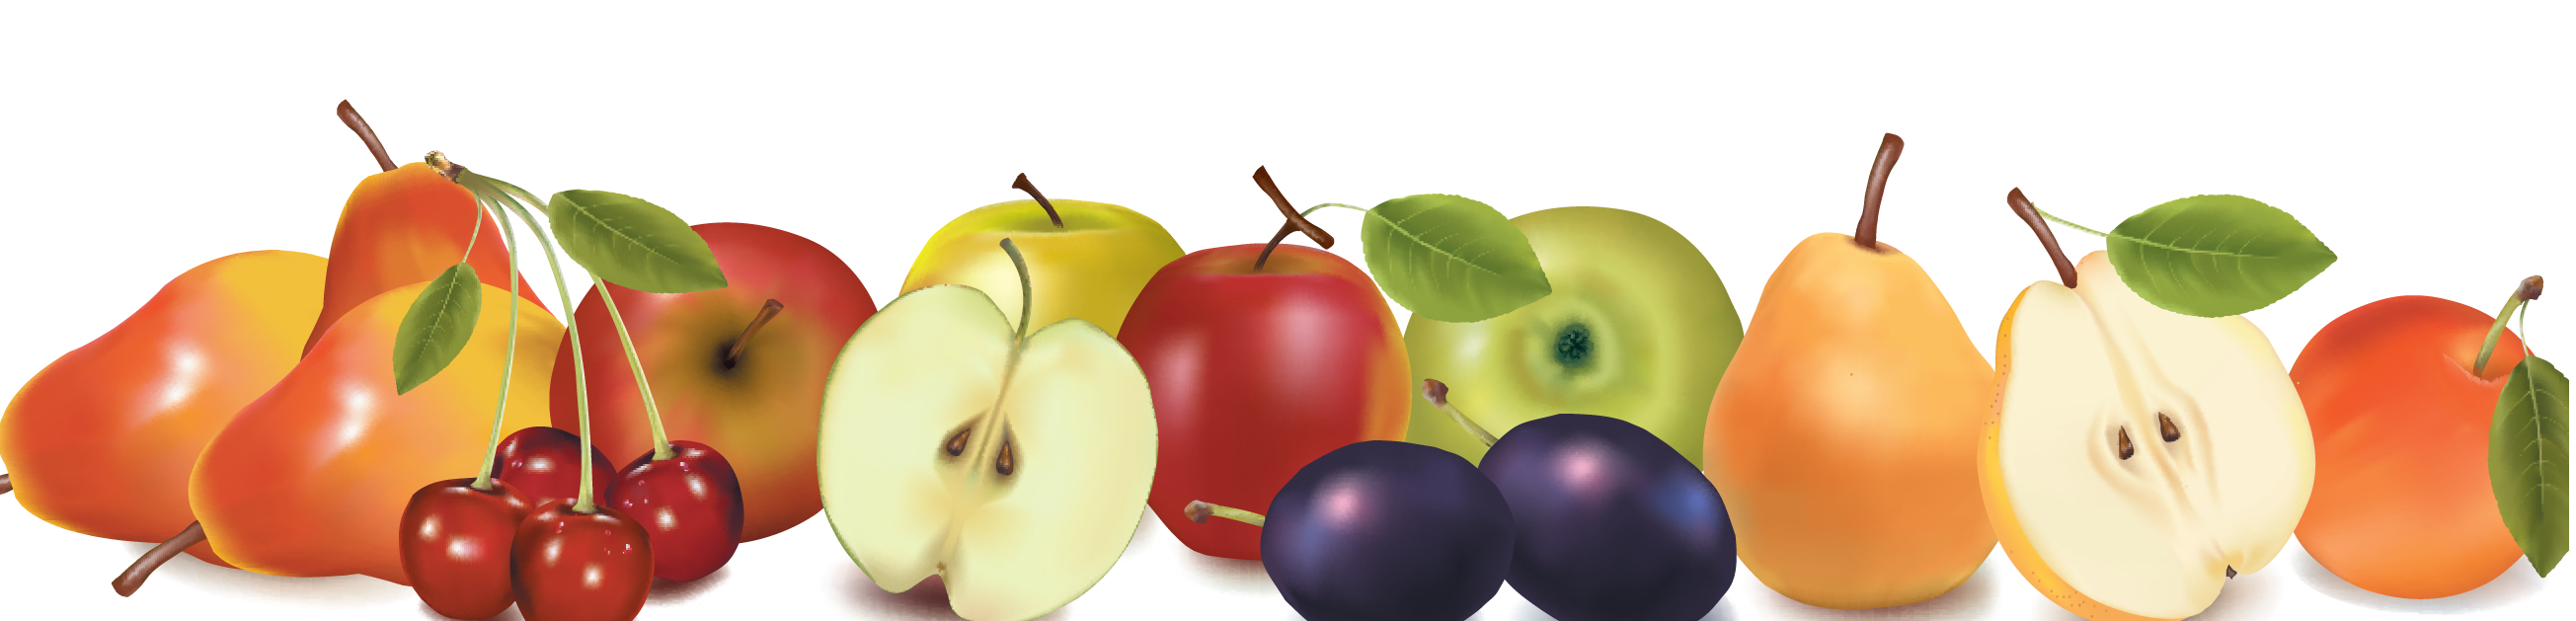 Fruit border png. Bigstock two design borders